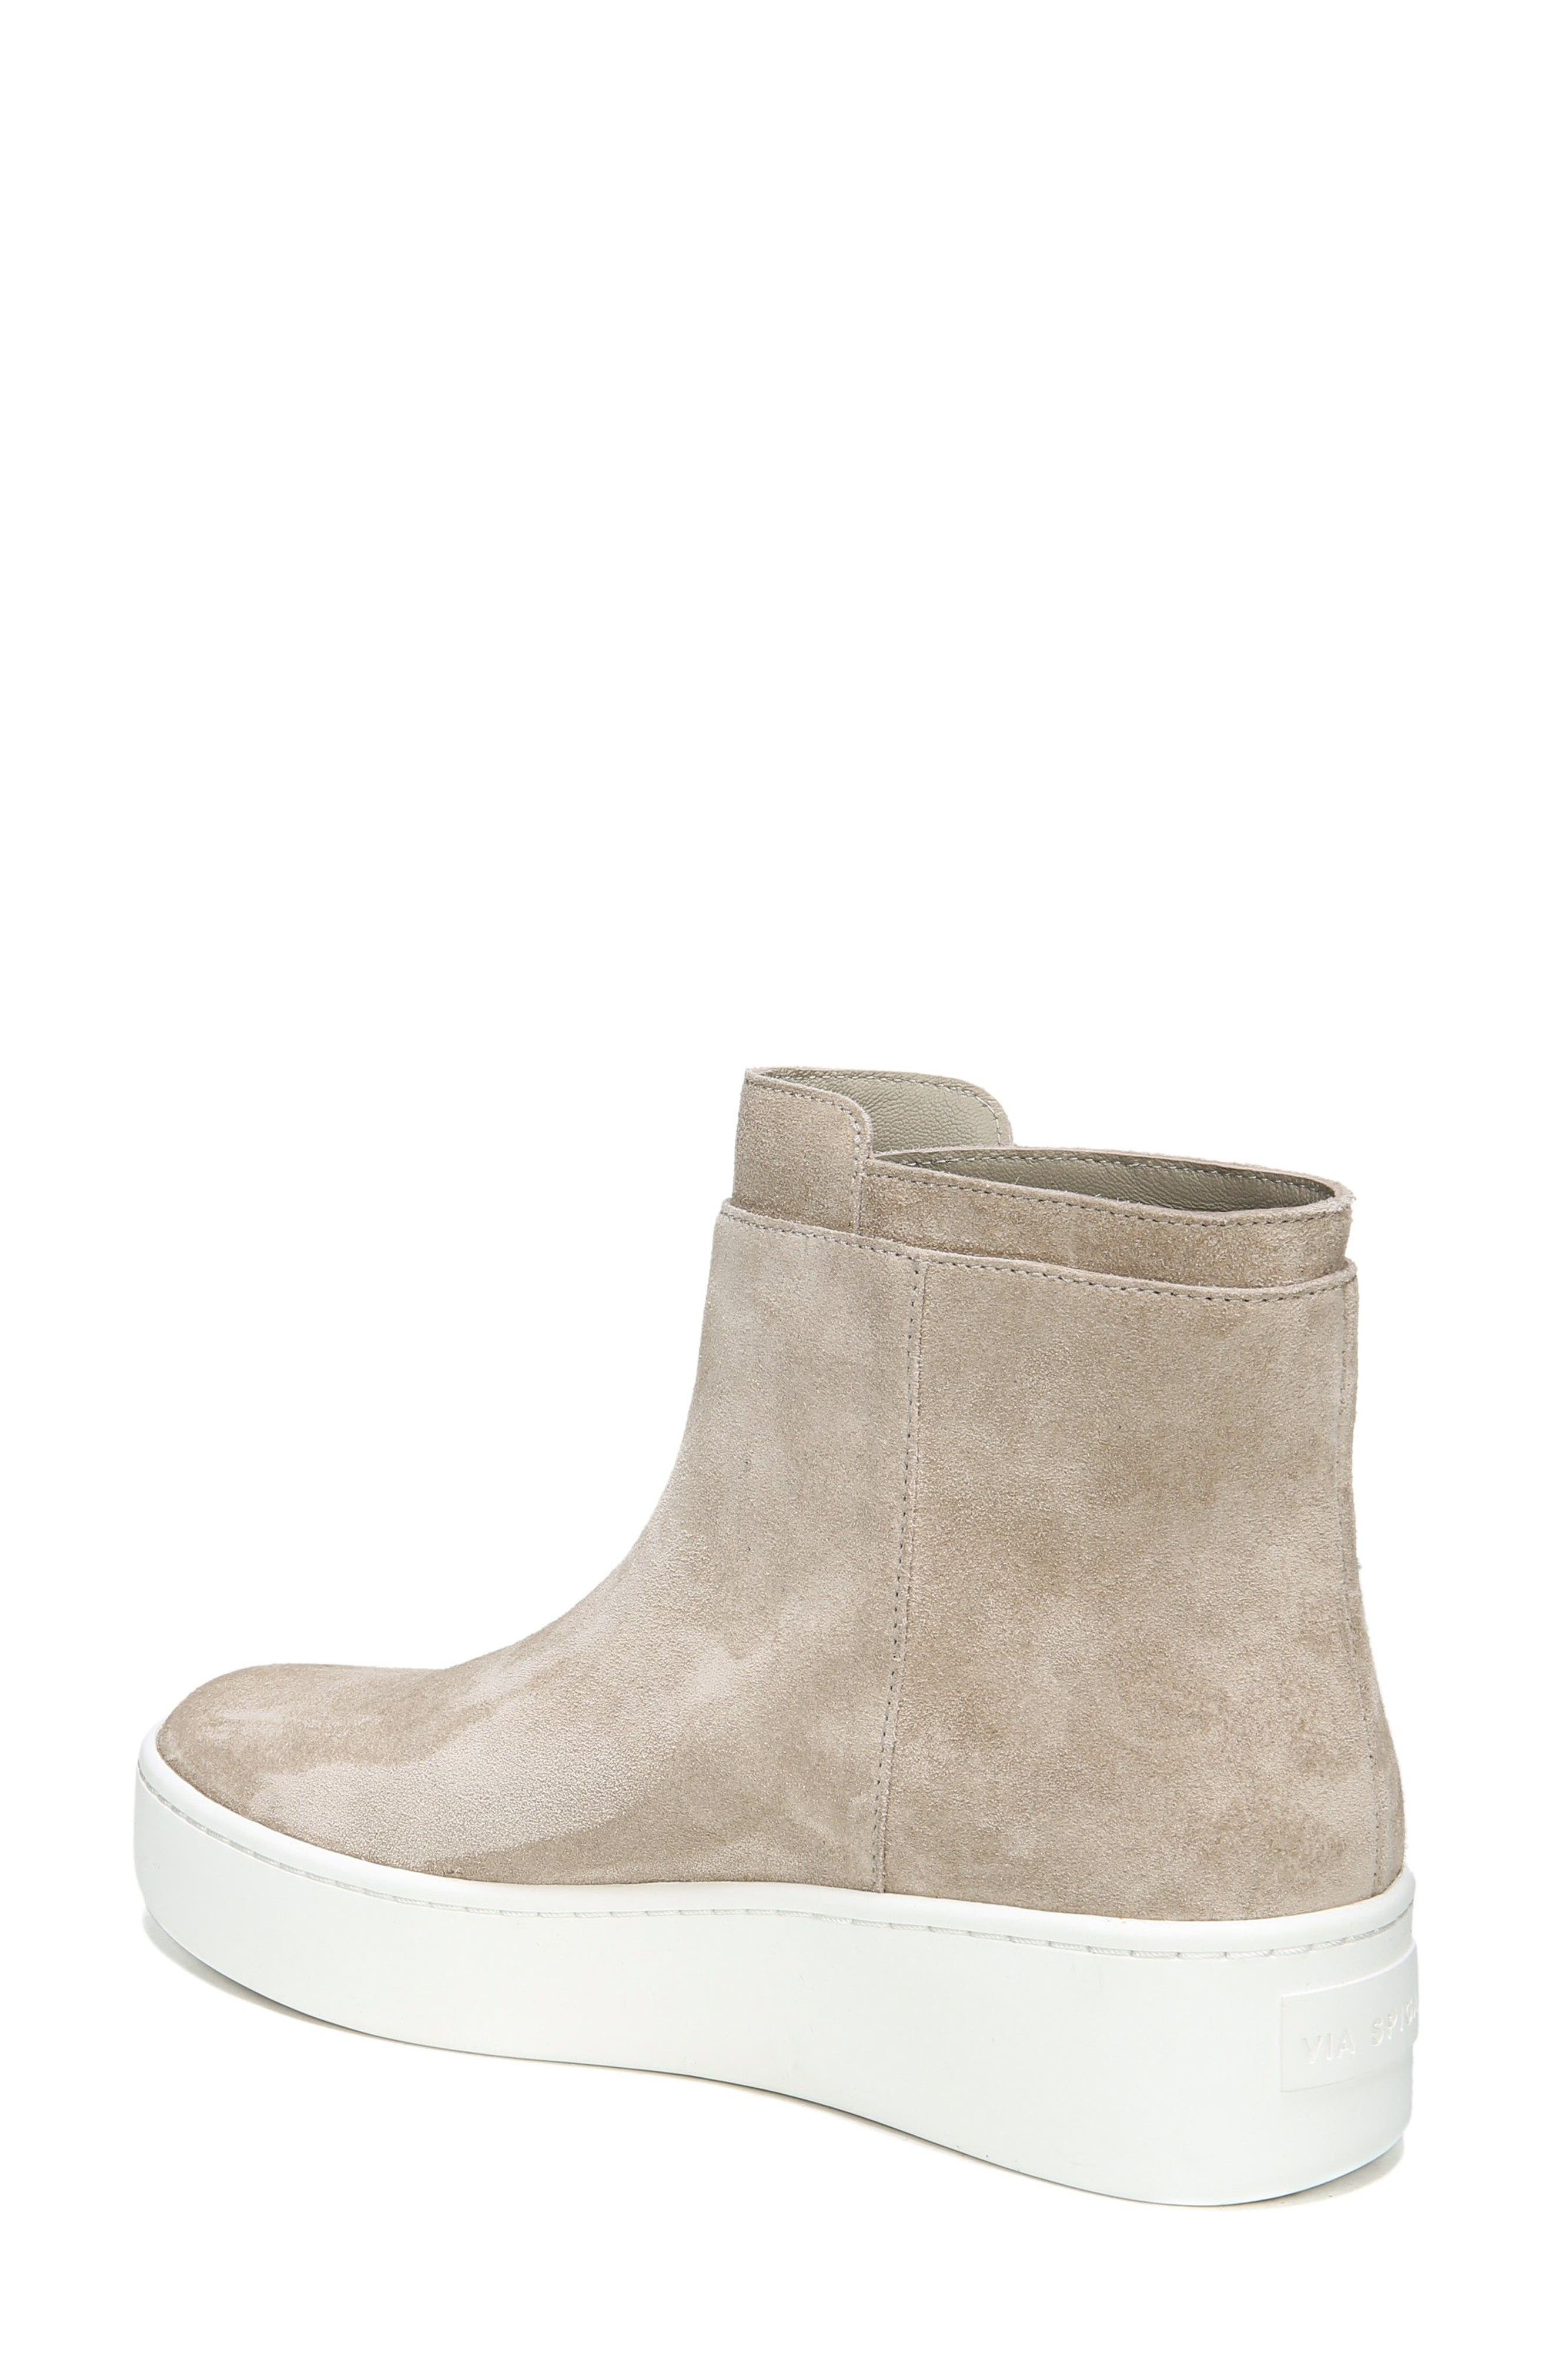 Alternate Image 2  - Via Spiga Easton High Top Sneaker (Women)